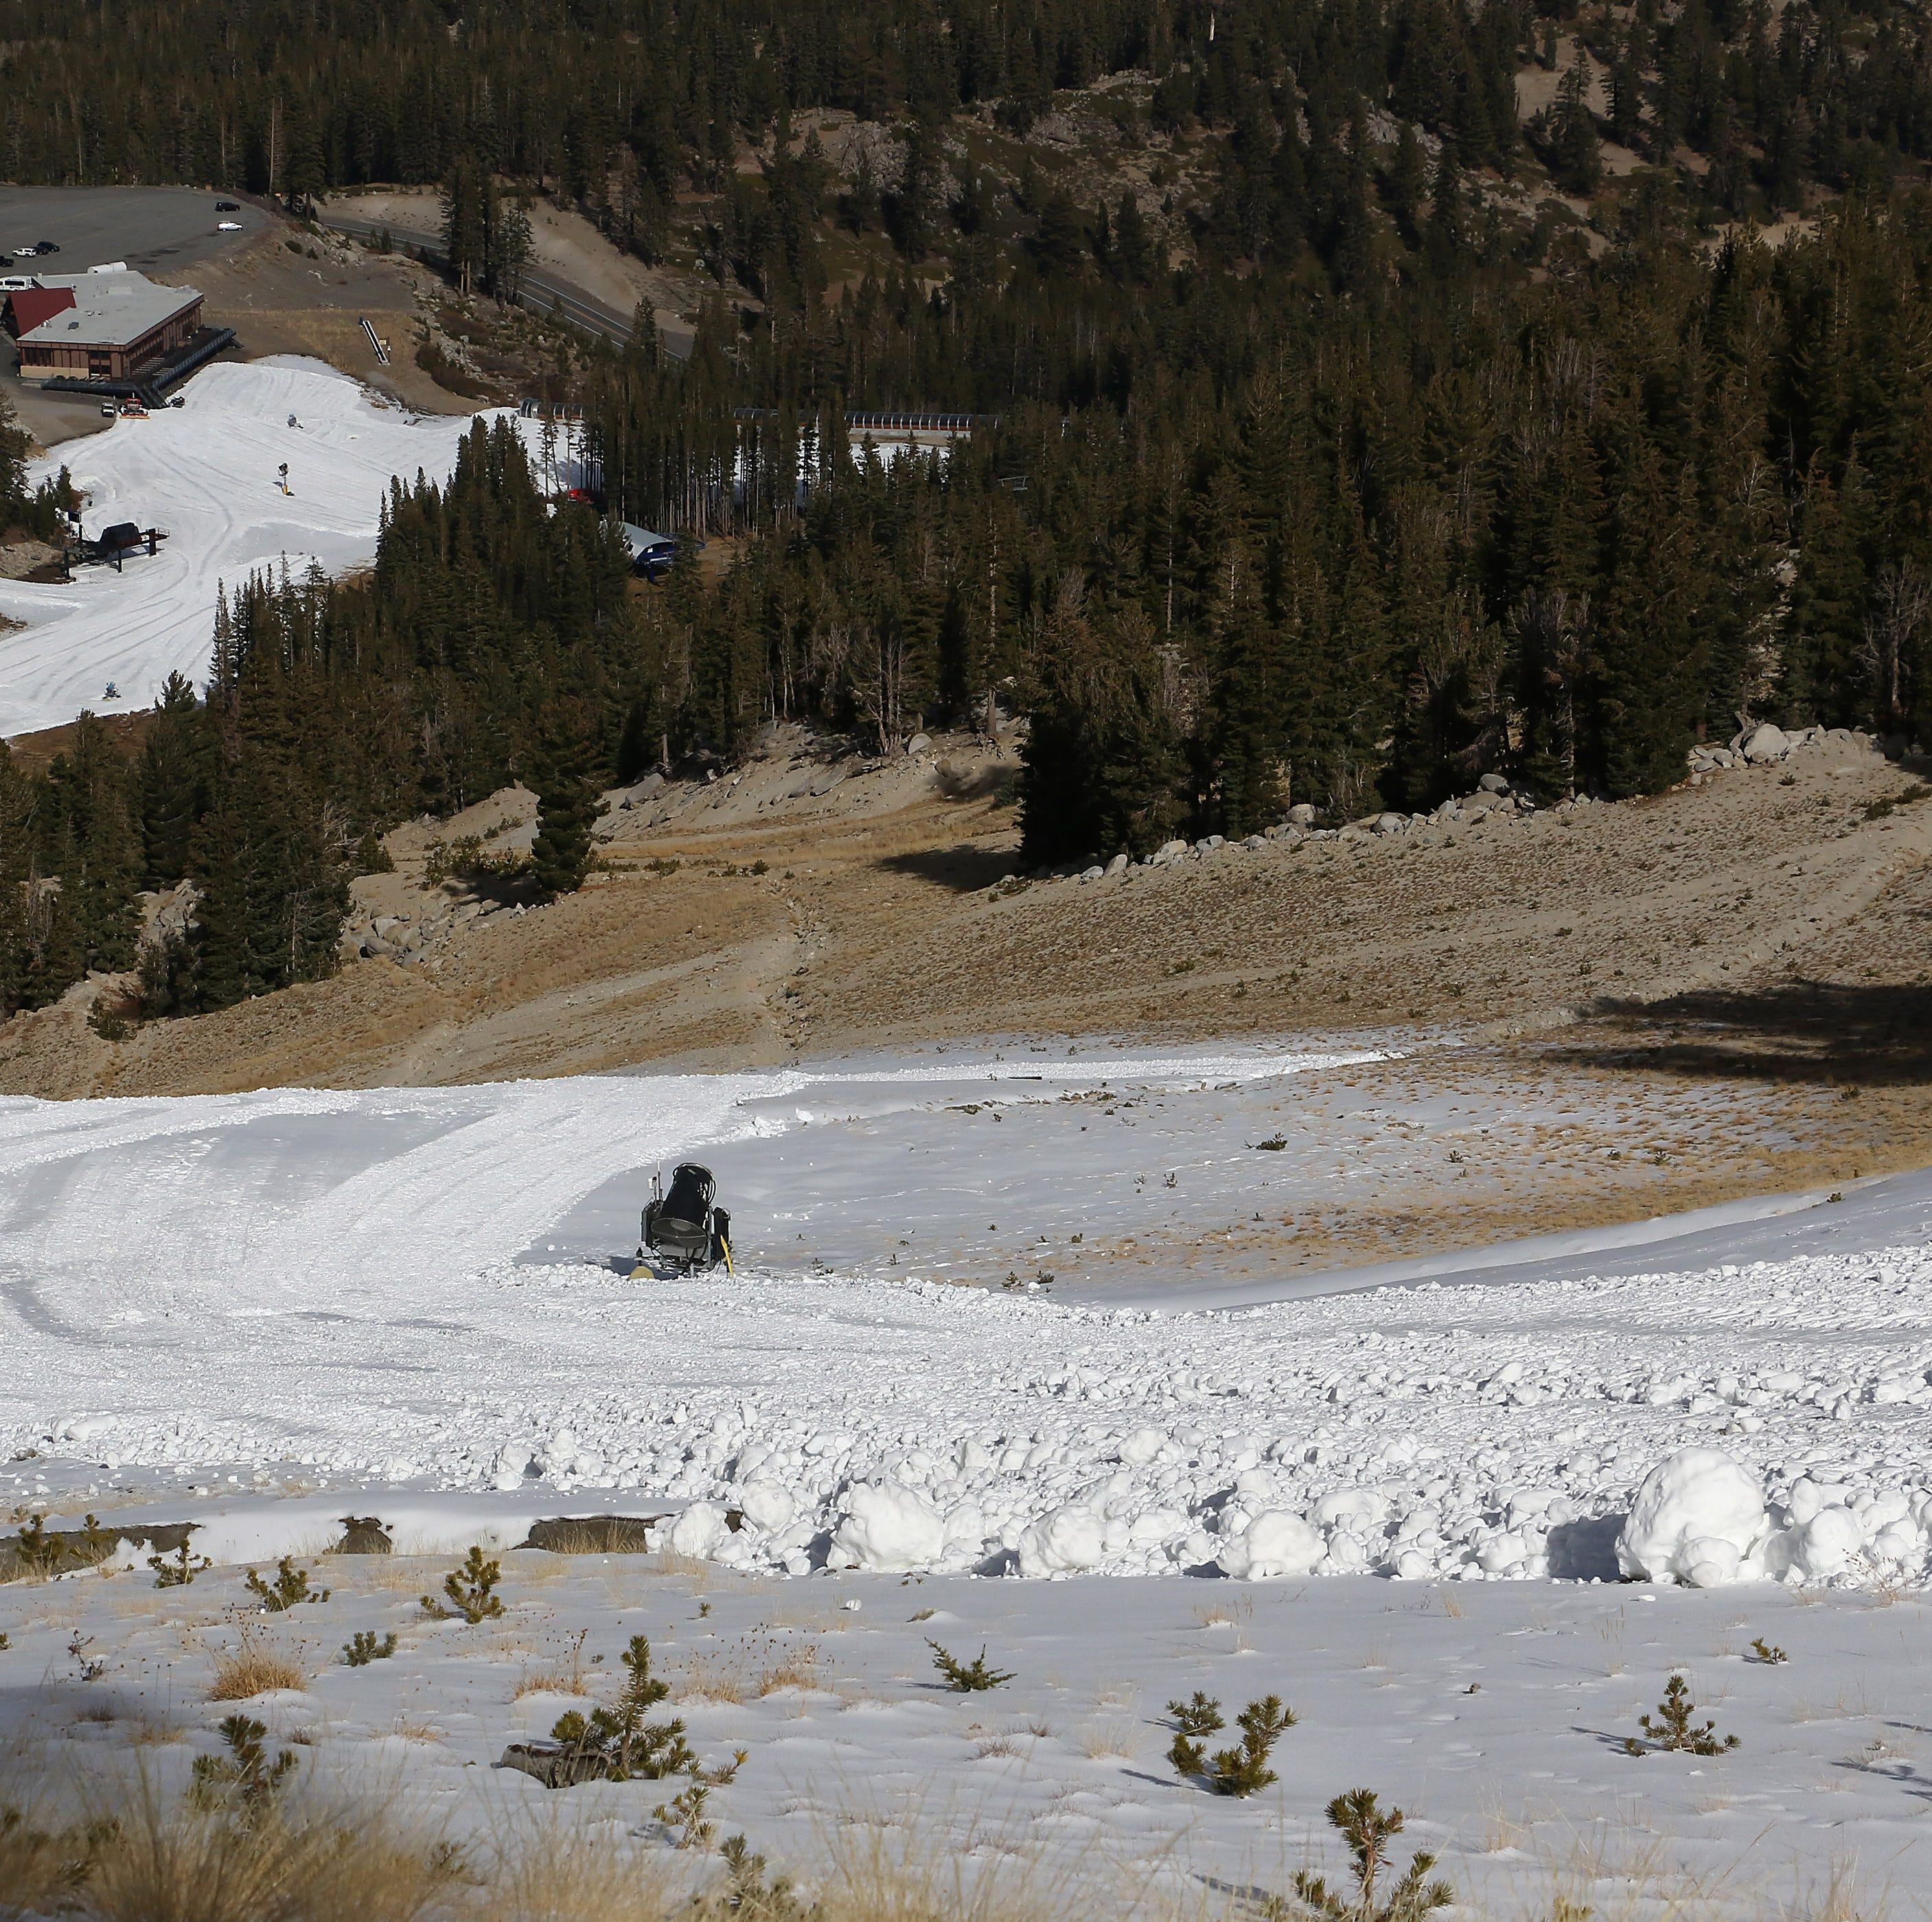 Snowmaking upgrades help Tahoe resorts welcome skiers despite warm, dry conditions